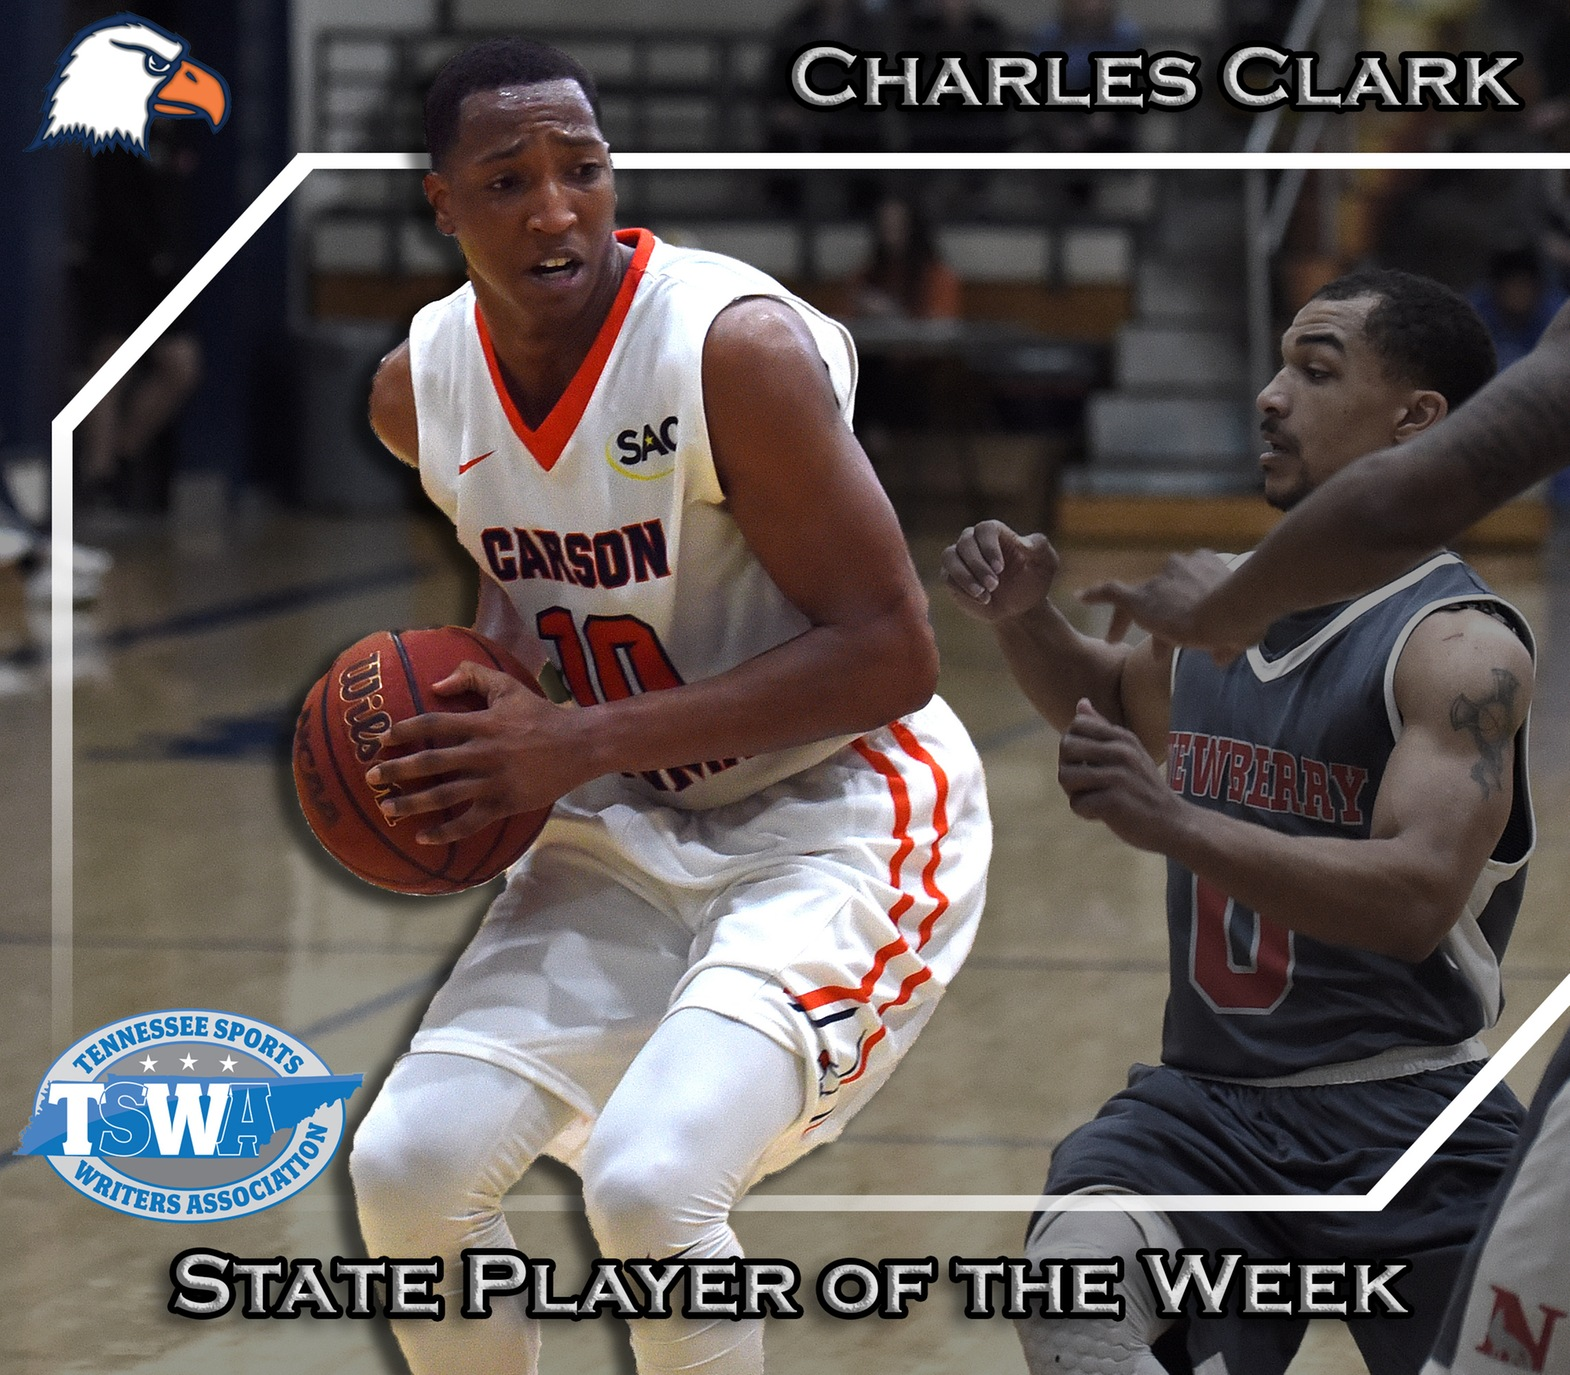 Awards roll in for Clark, junior named TSWA Player of the Week